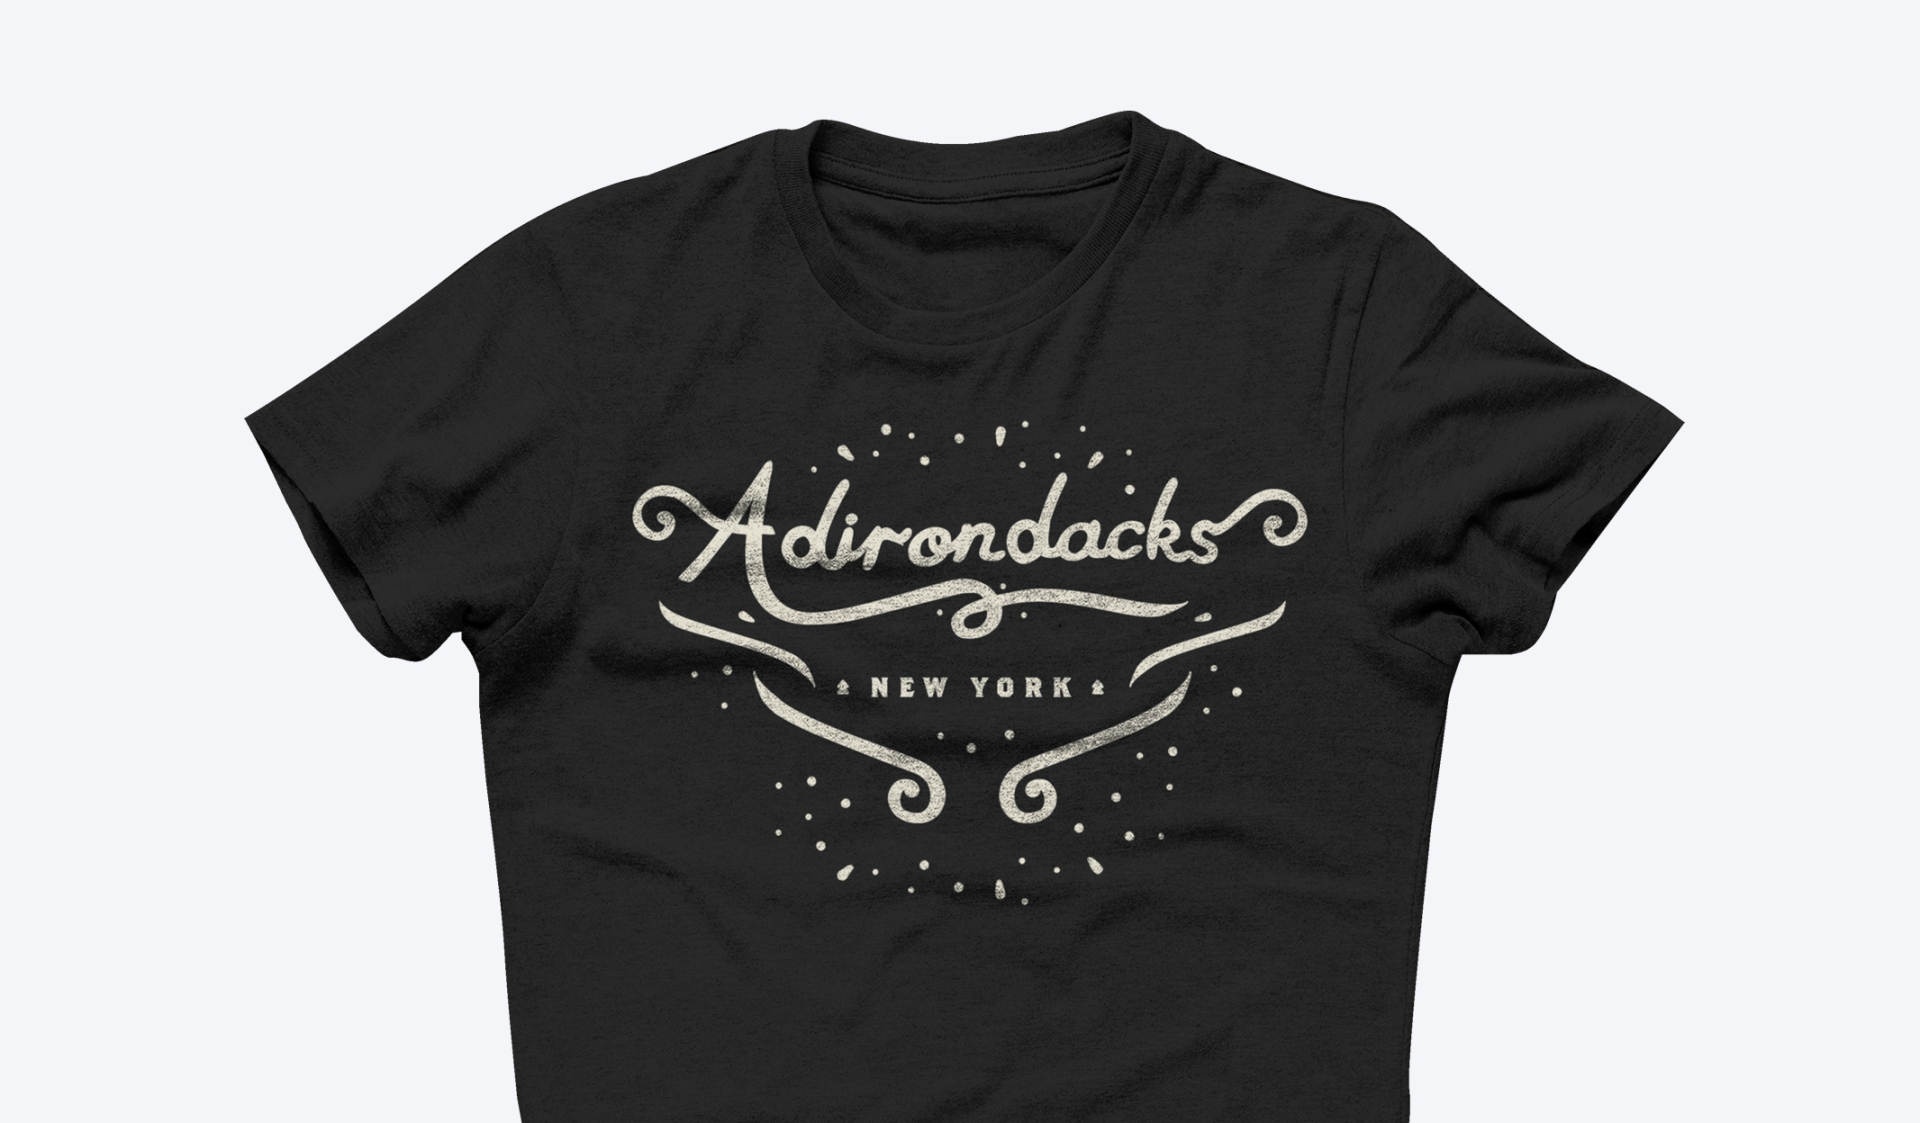 zeki-michael-adirondacks-ny-illustration-designer-design-selected-for-sale-tshirt.JPG